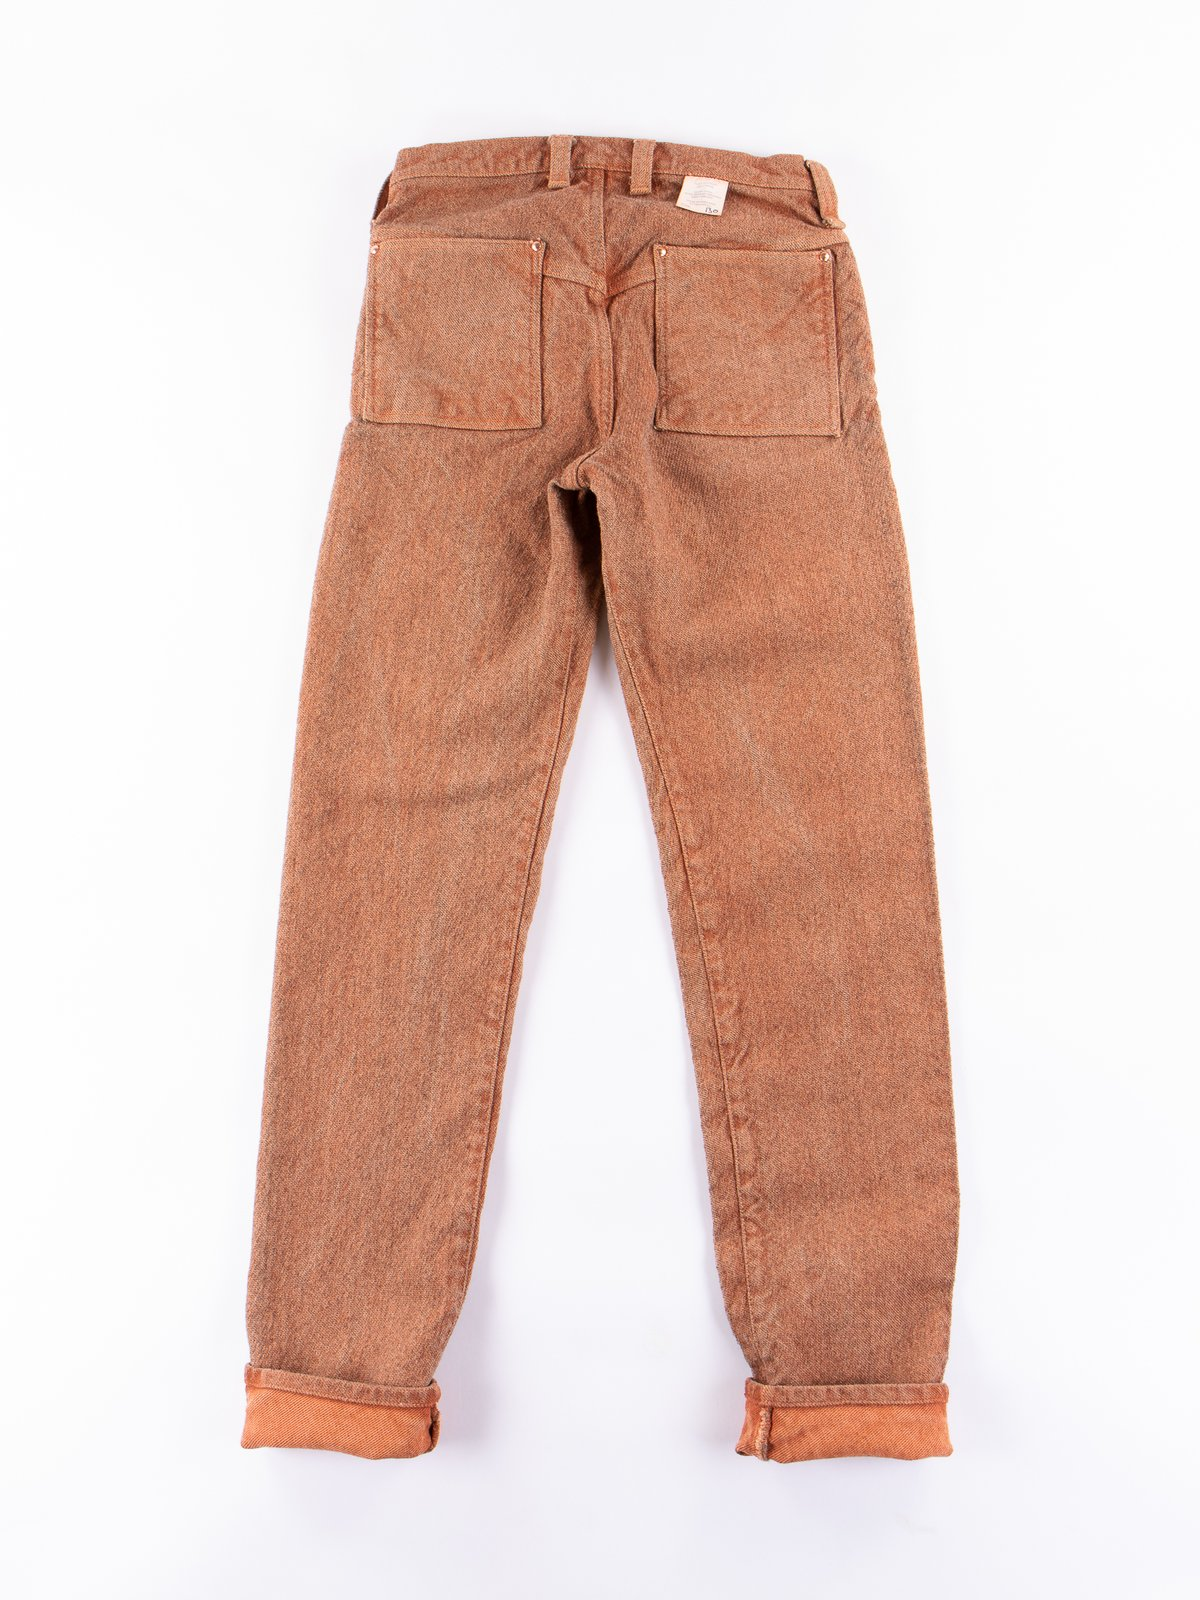 Red Ochre Dye Tapered Jean - Image 7